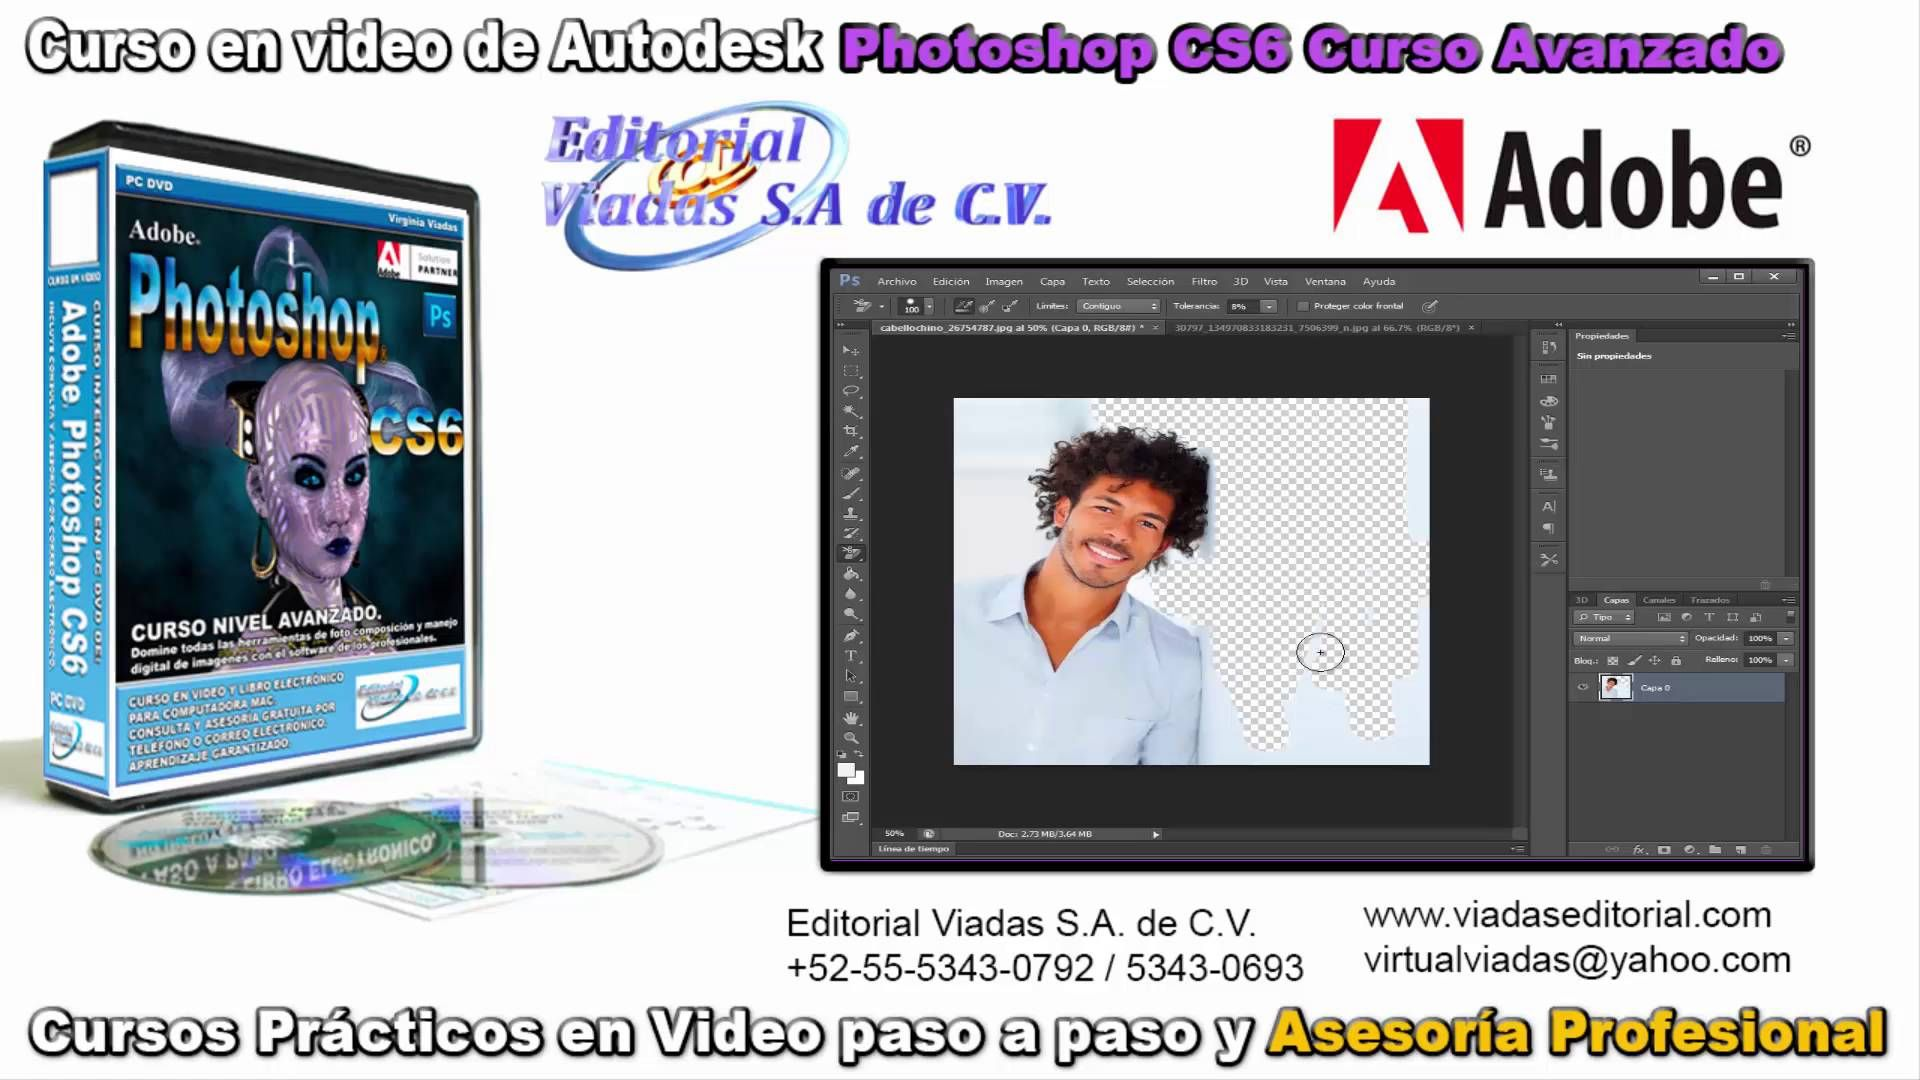 Photoshop Cs6 Curso Avanzado Tutorial En Español Photoshop Cursillo Curso De Photoshop